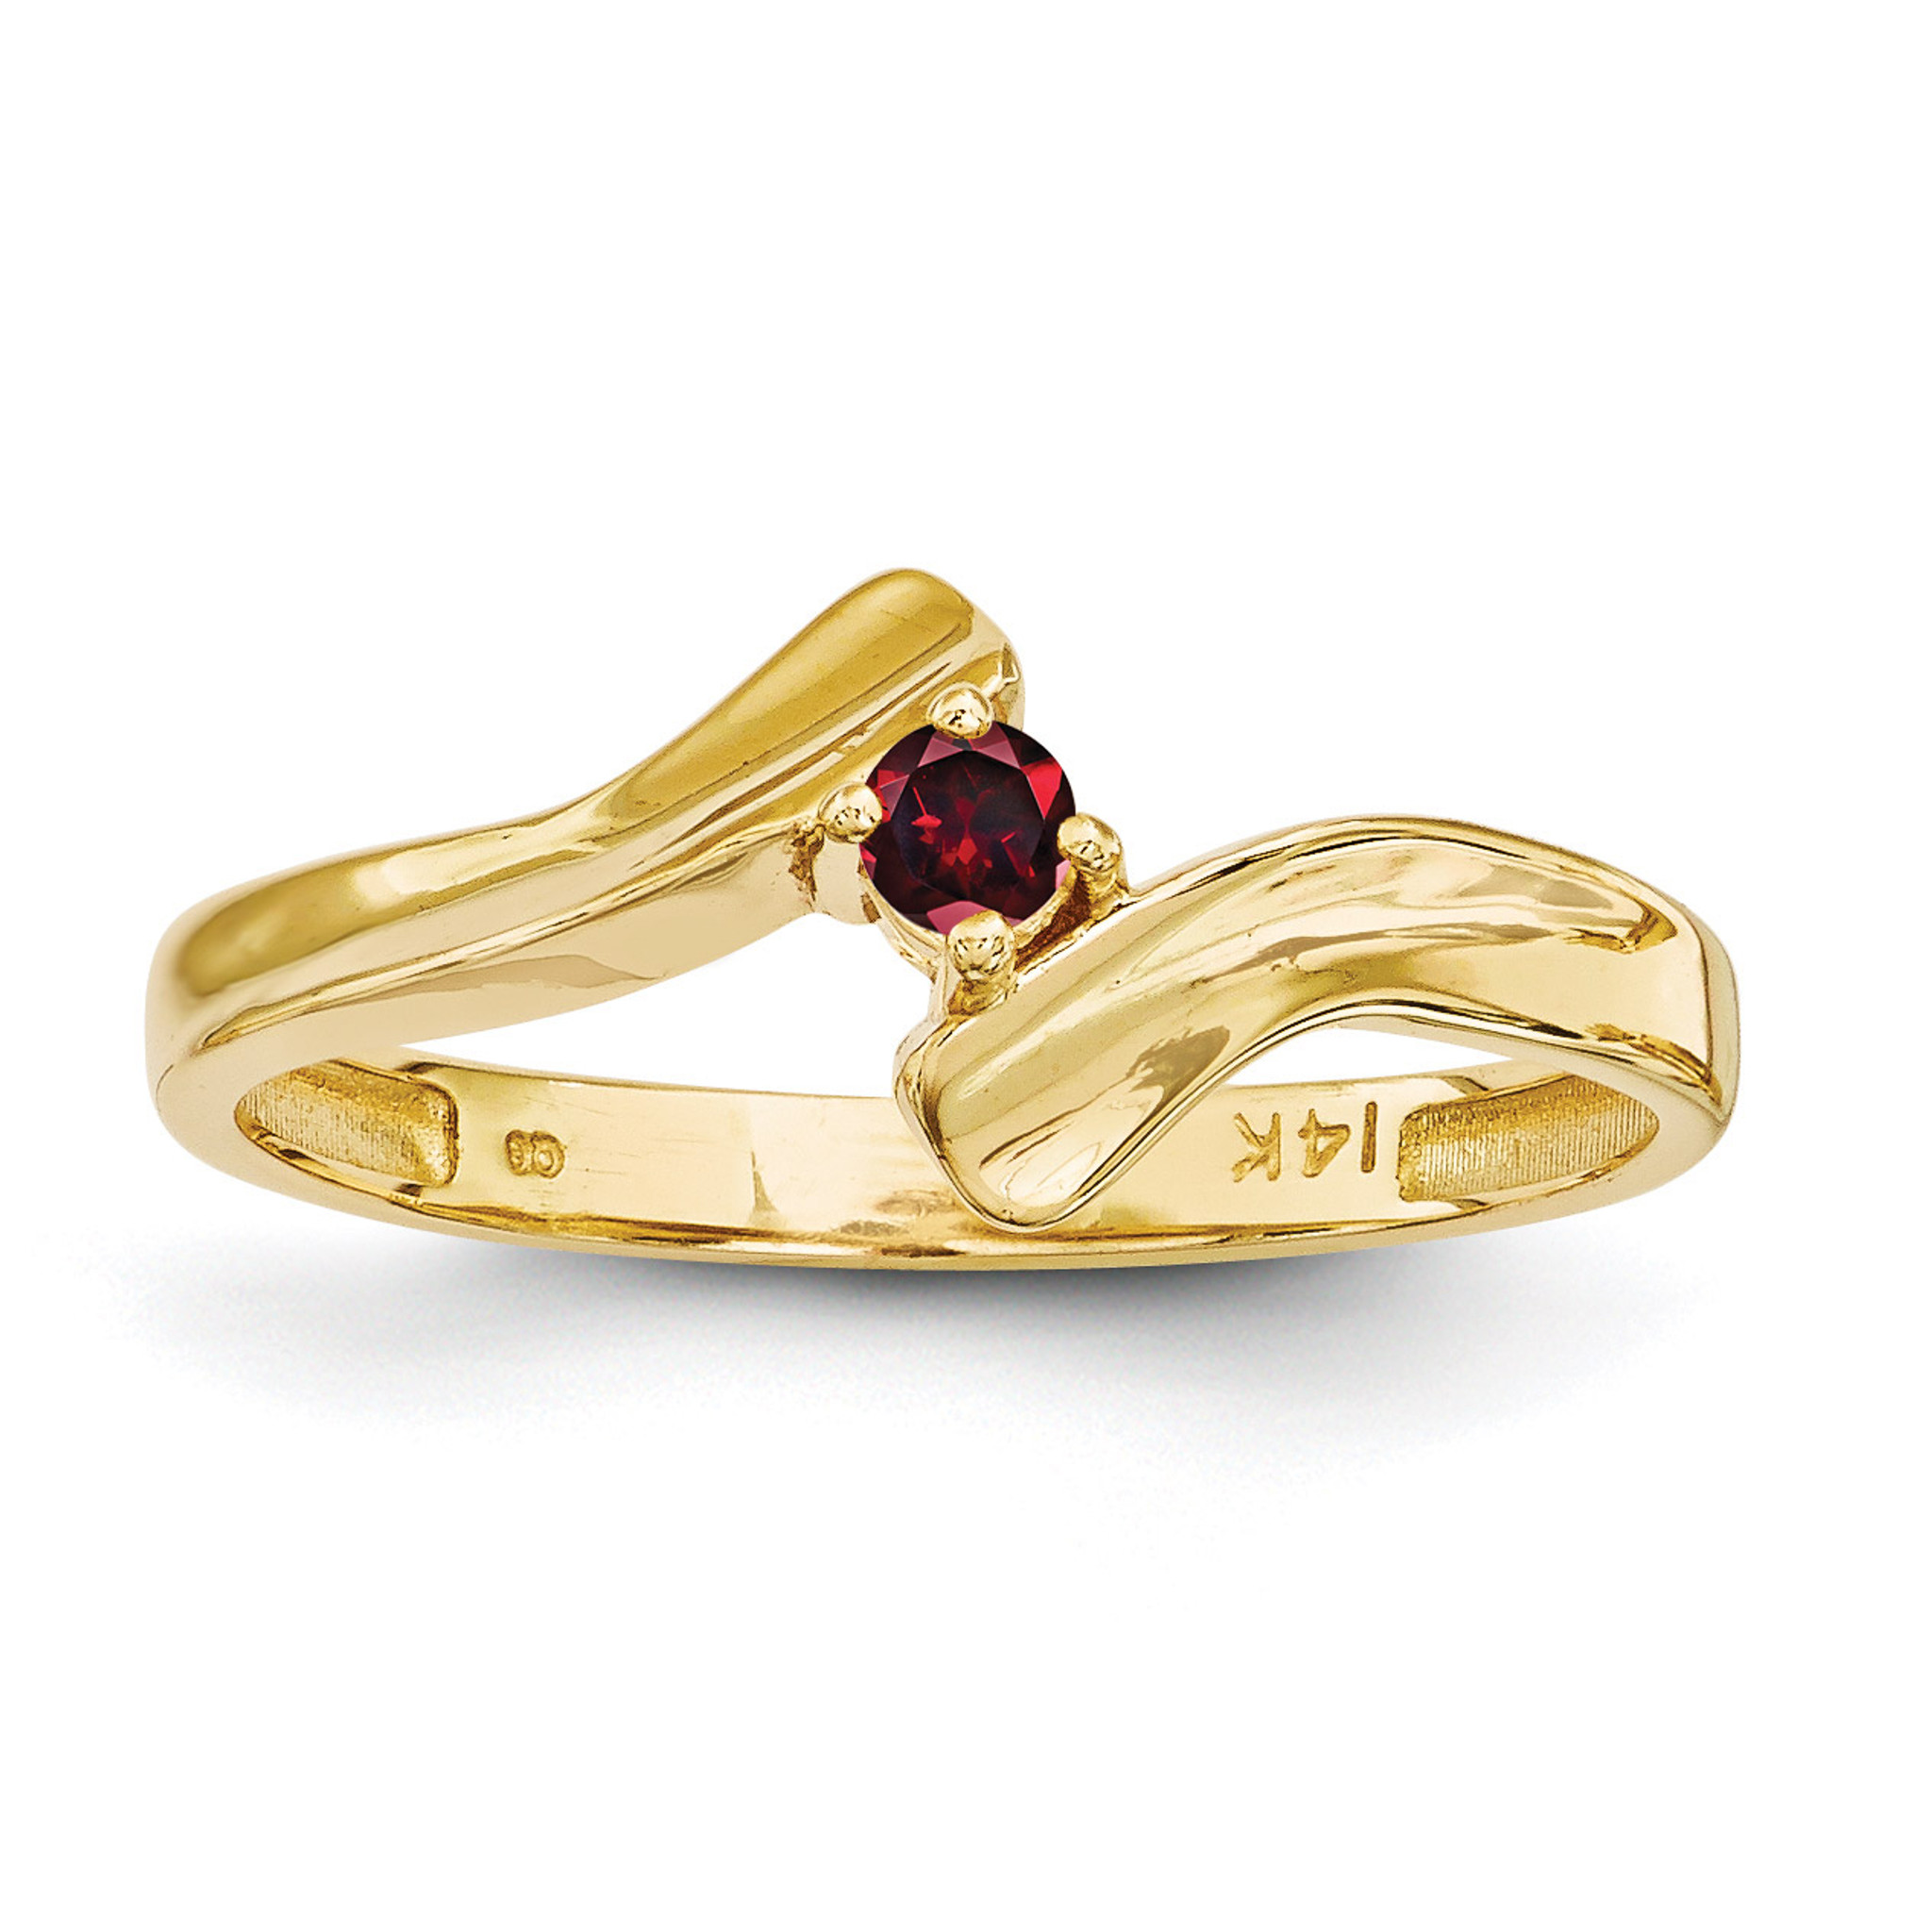 1 Birthstone Mothers Ring 14k Gold Polished Xmr13 - Homebello